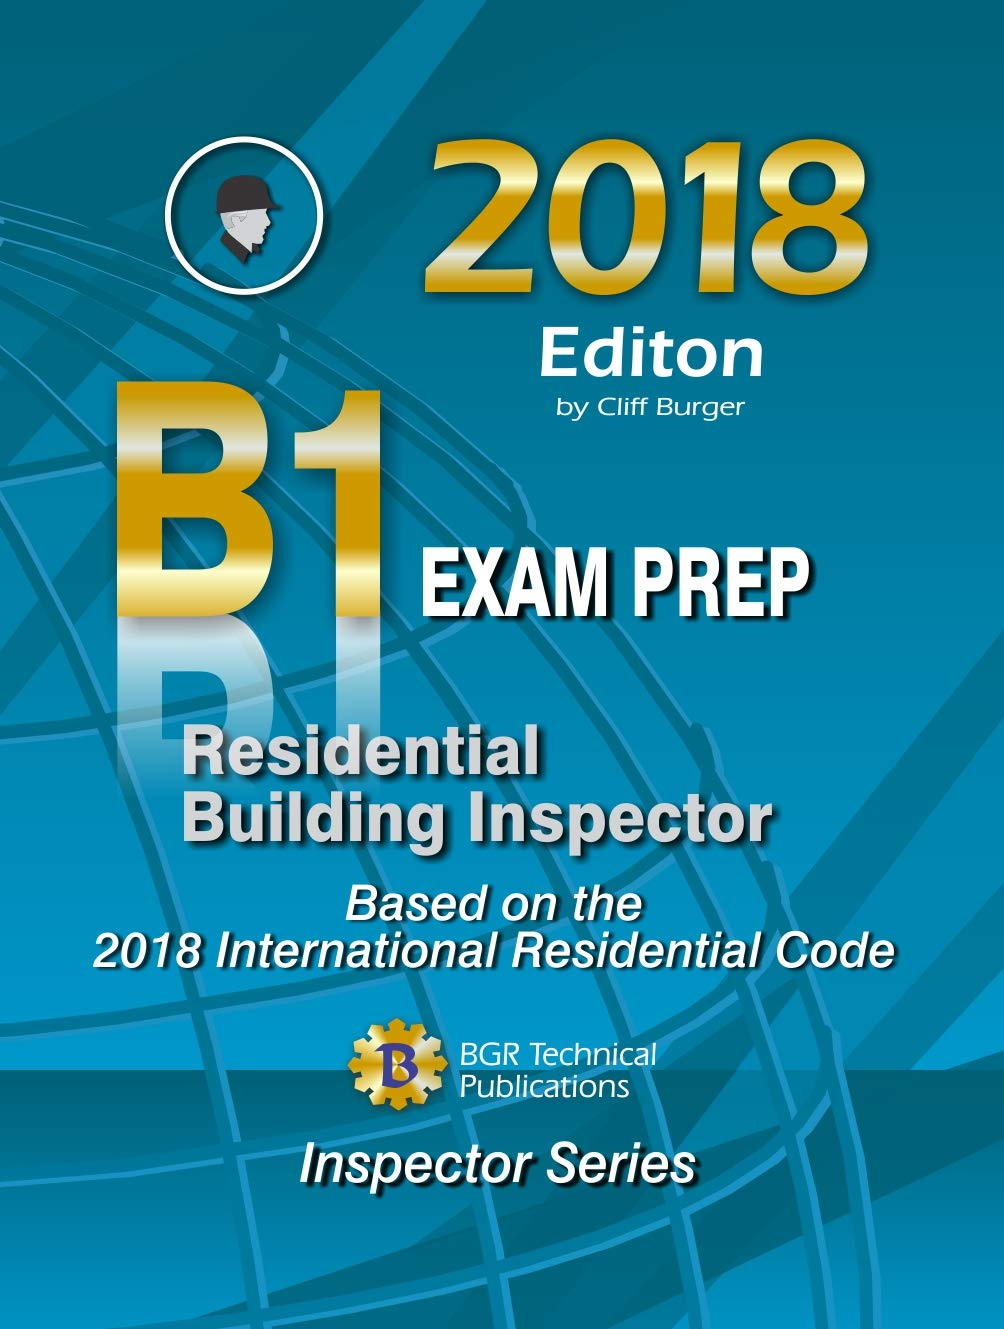 Residential Building Inspector B1 Exam Prep 2018 Cliff Burger